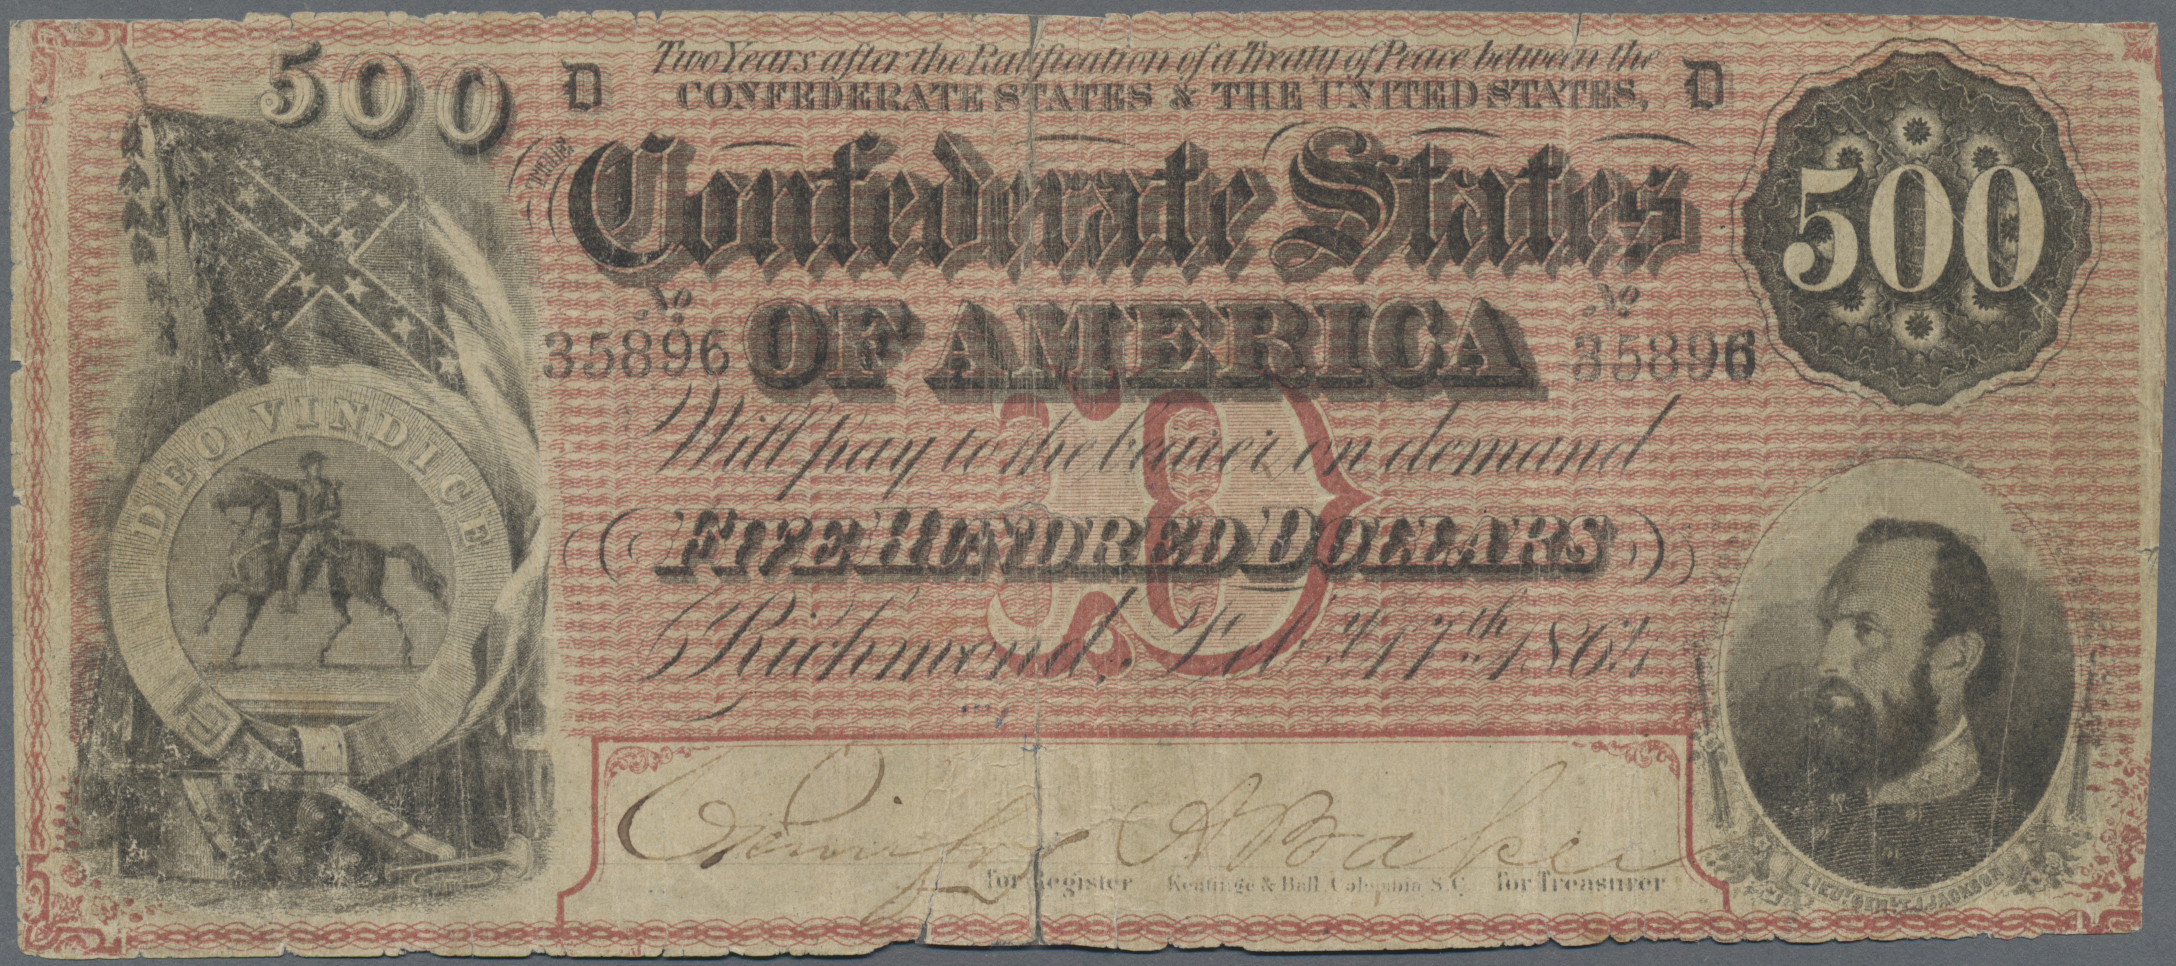 Lot 01129 - United States of America | Banknoten  -  Auktionshaus Christoph Gärtner GmbH & Co. KG Sale #48 The Banknotes